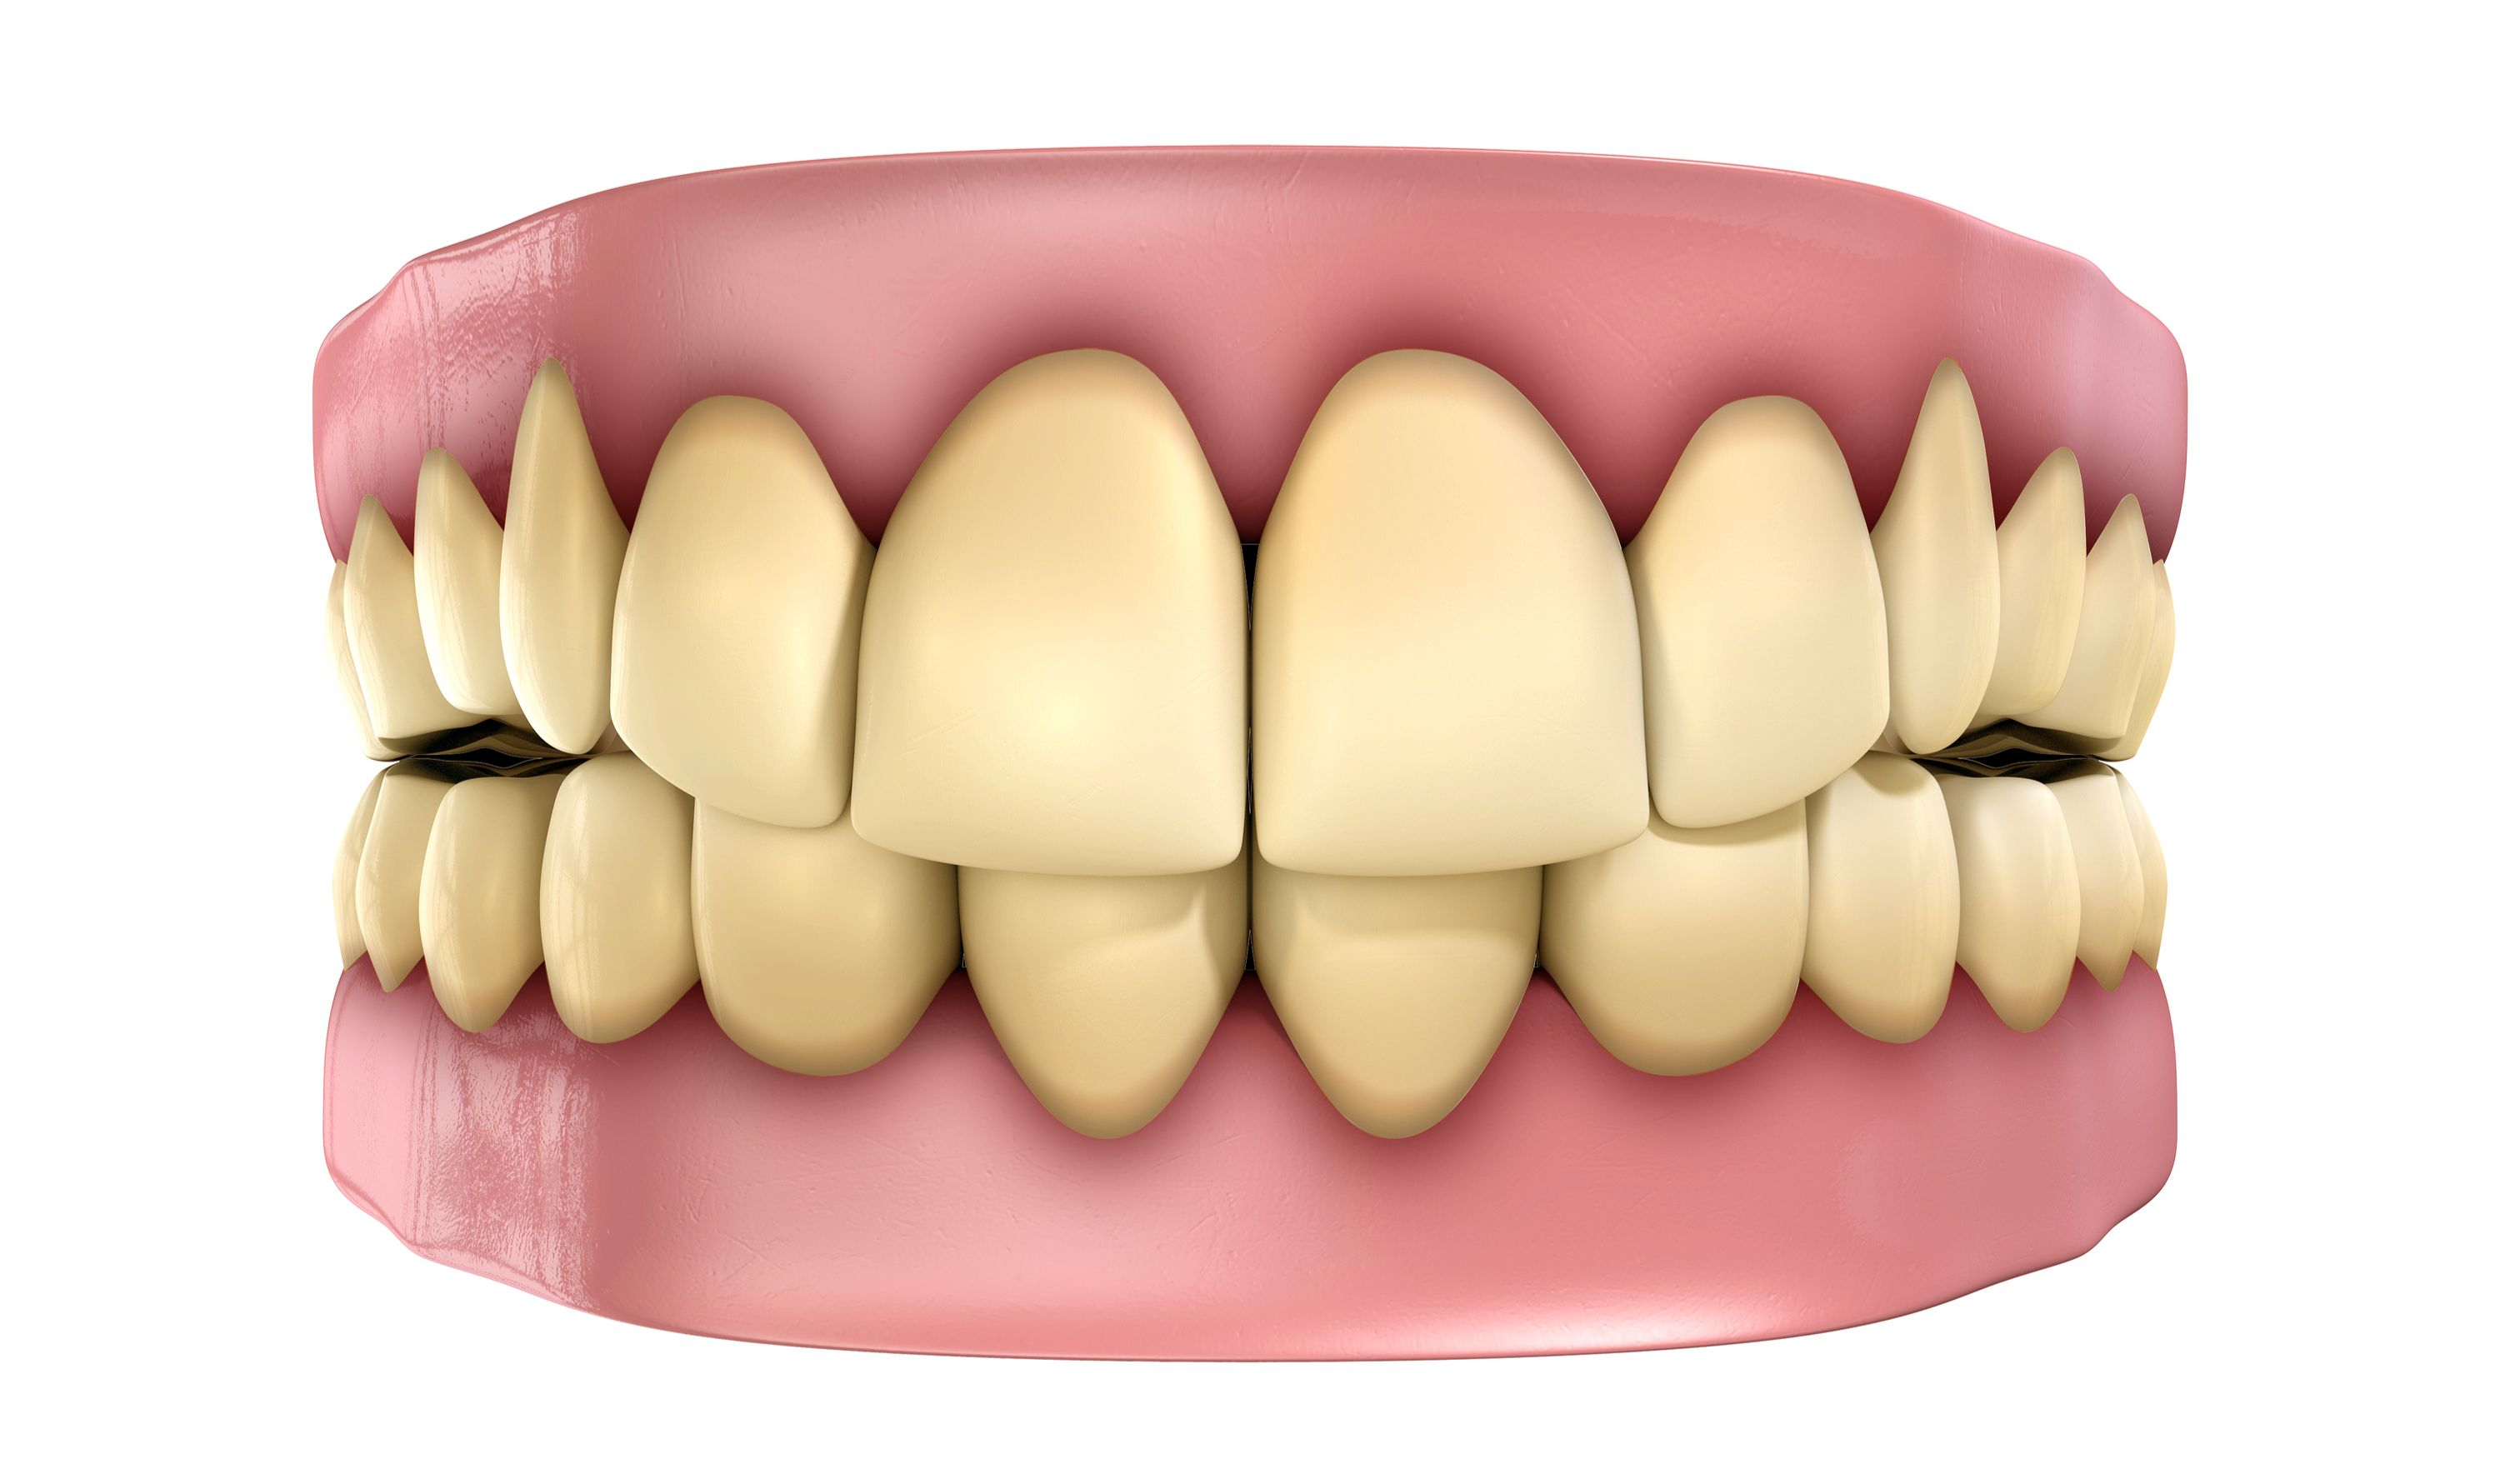 Digital image of dental model with tooth stains